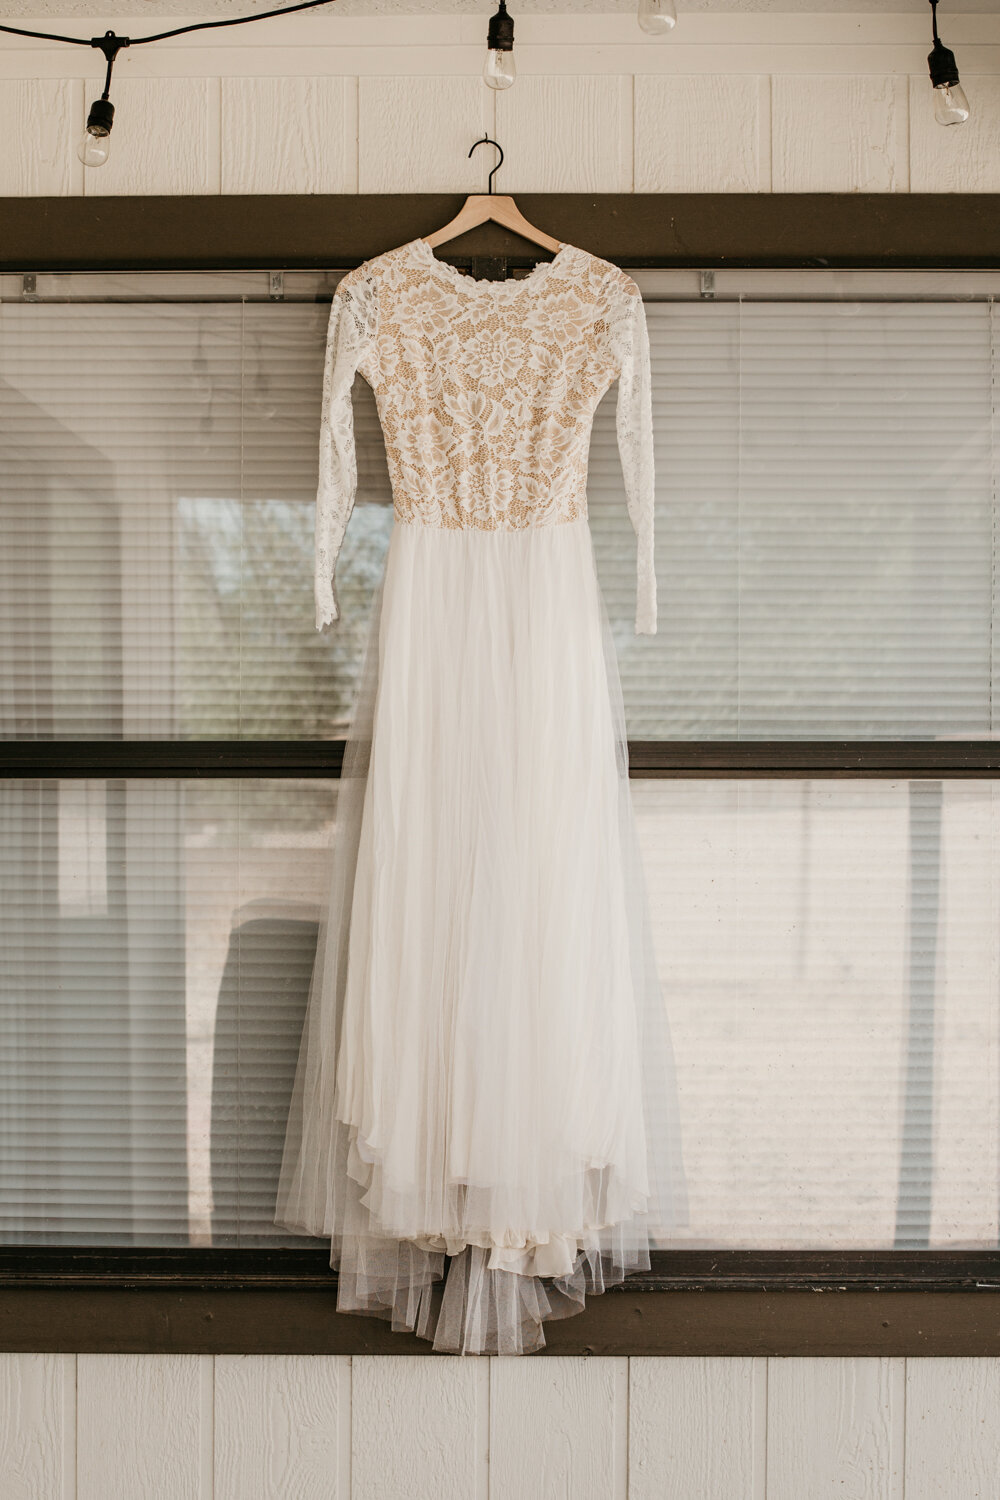 wedding-dress-rentals-for-styled-shoots-elopement-photographer-8